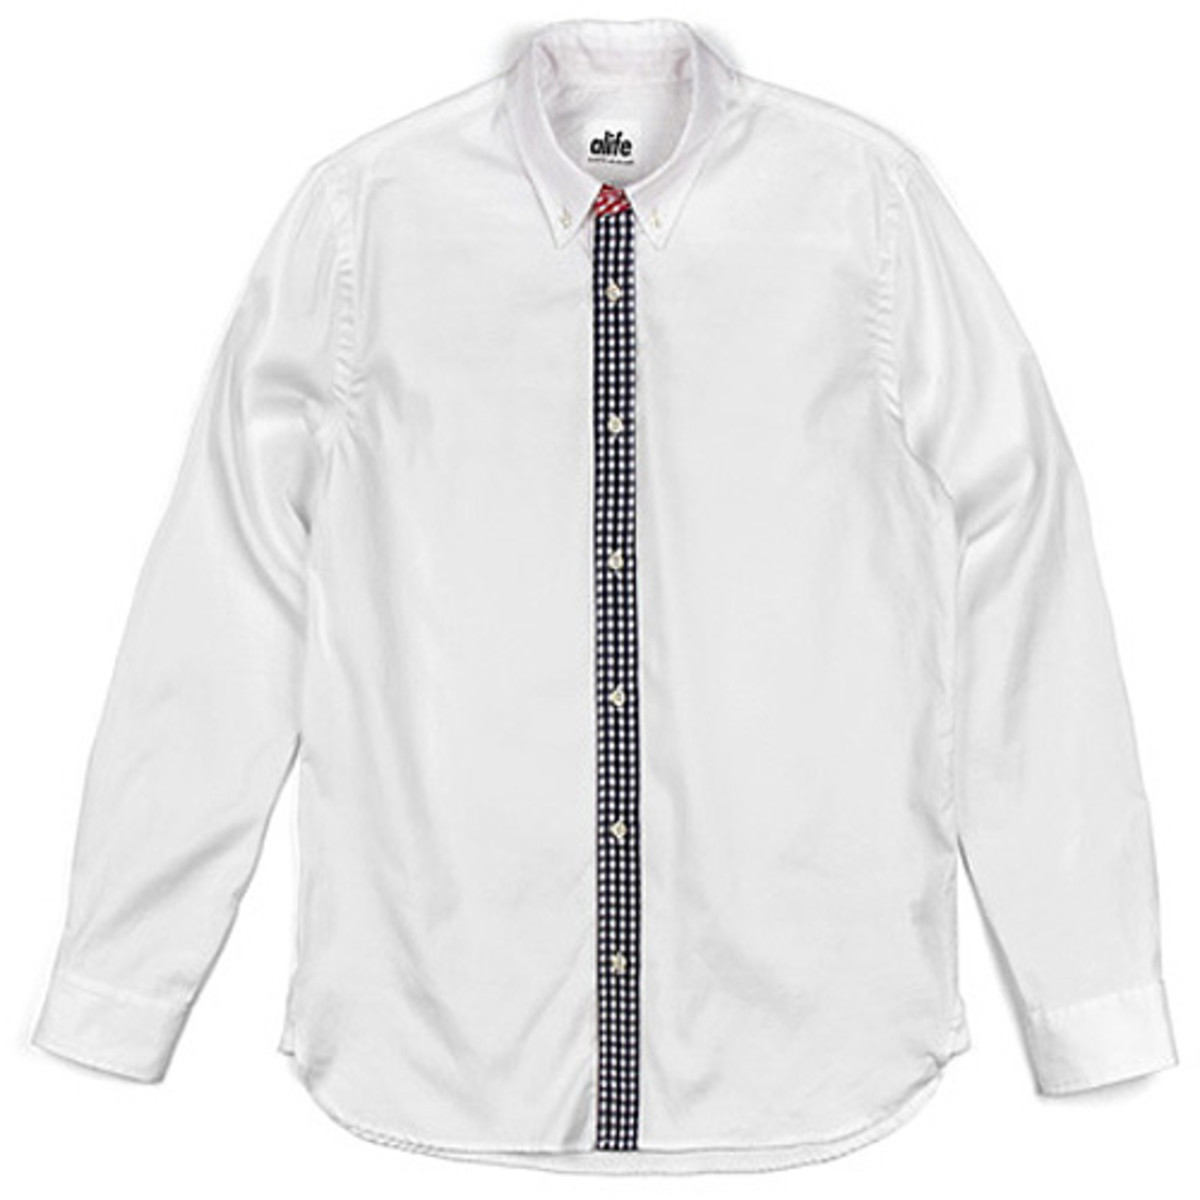 alife-spring-2010-button-down-shirt-05